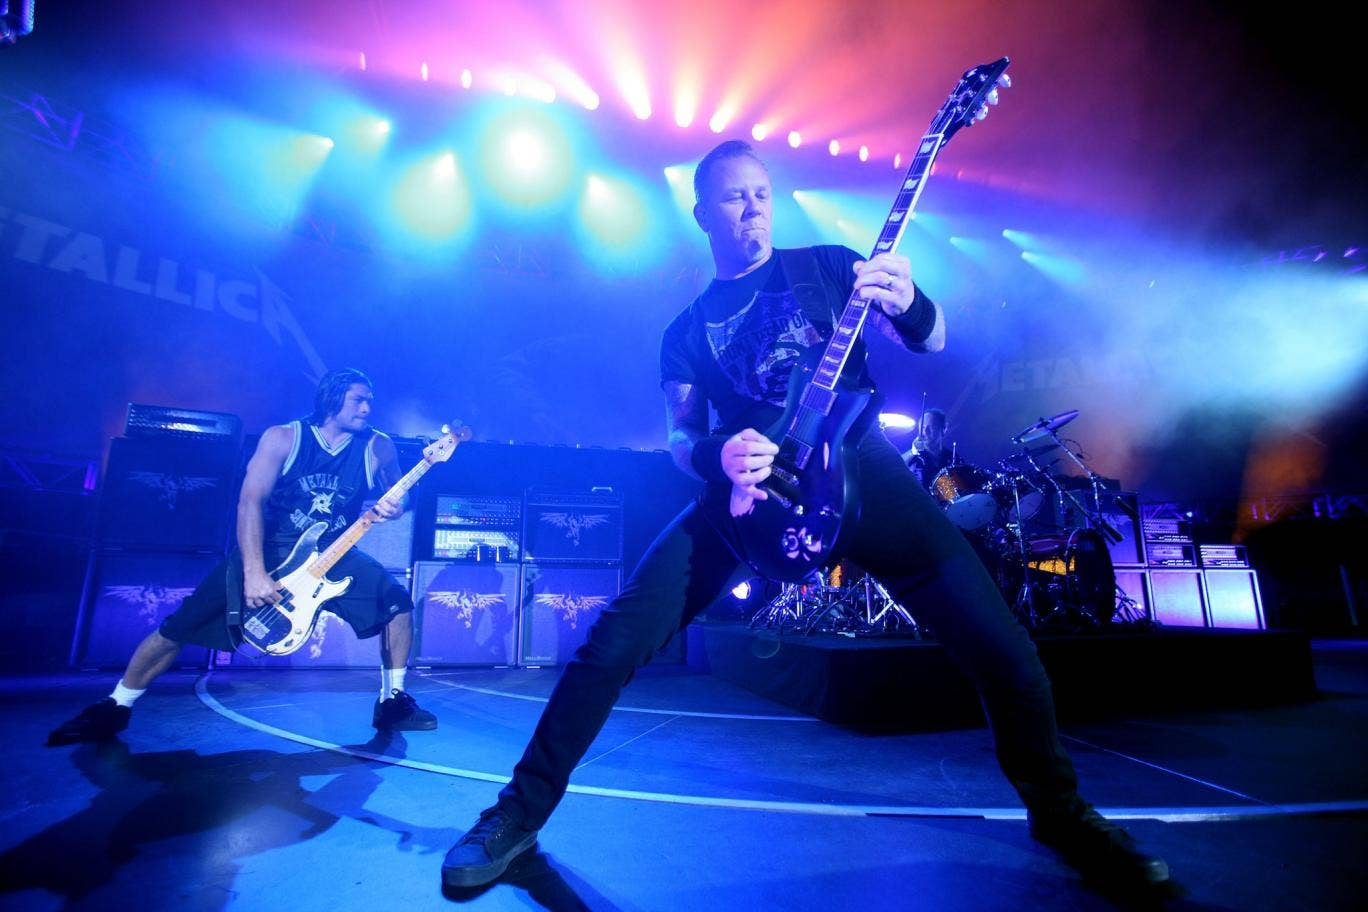 Metallica have so far proved an unpopular choice as Glastonbury headliners